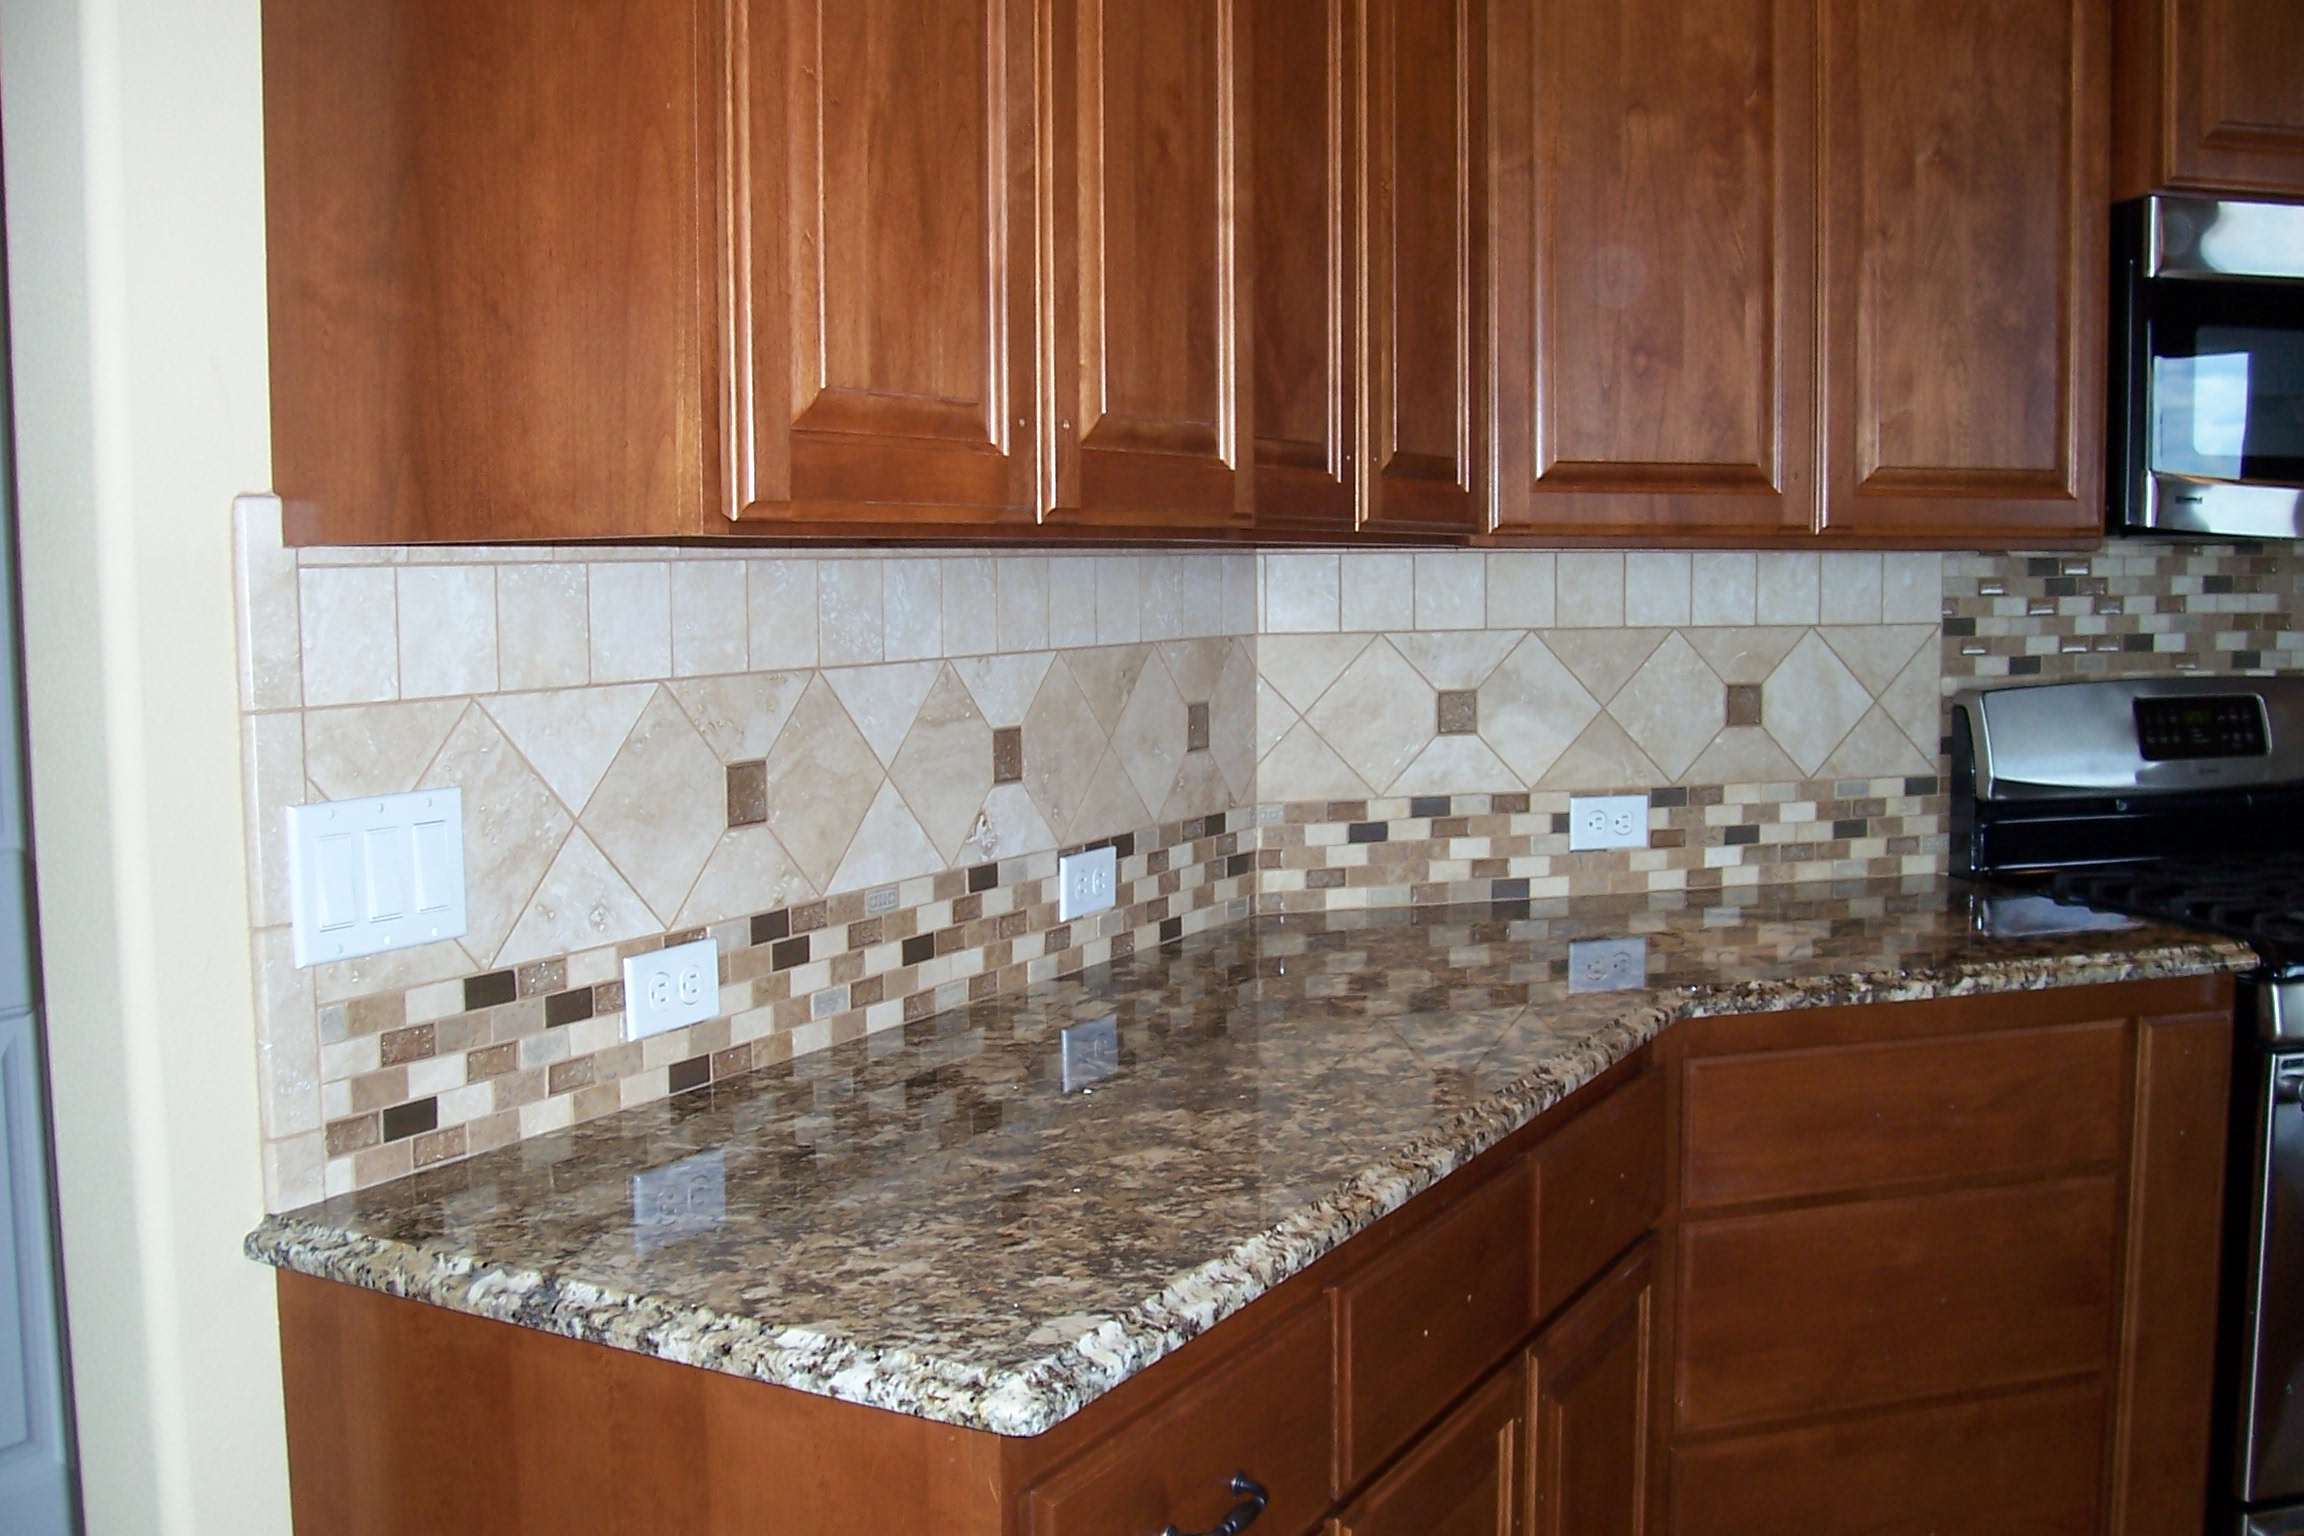 301 moved permanently - Backsplash ideas kitchen ...